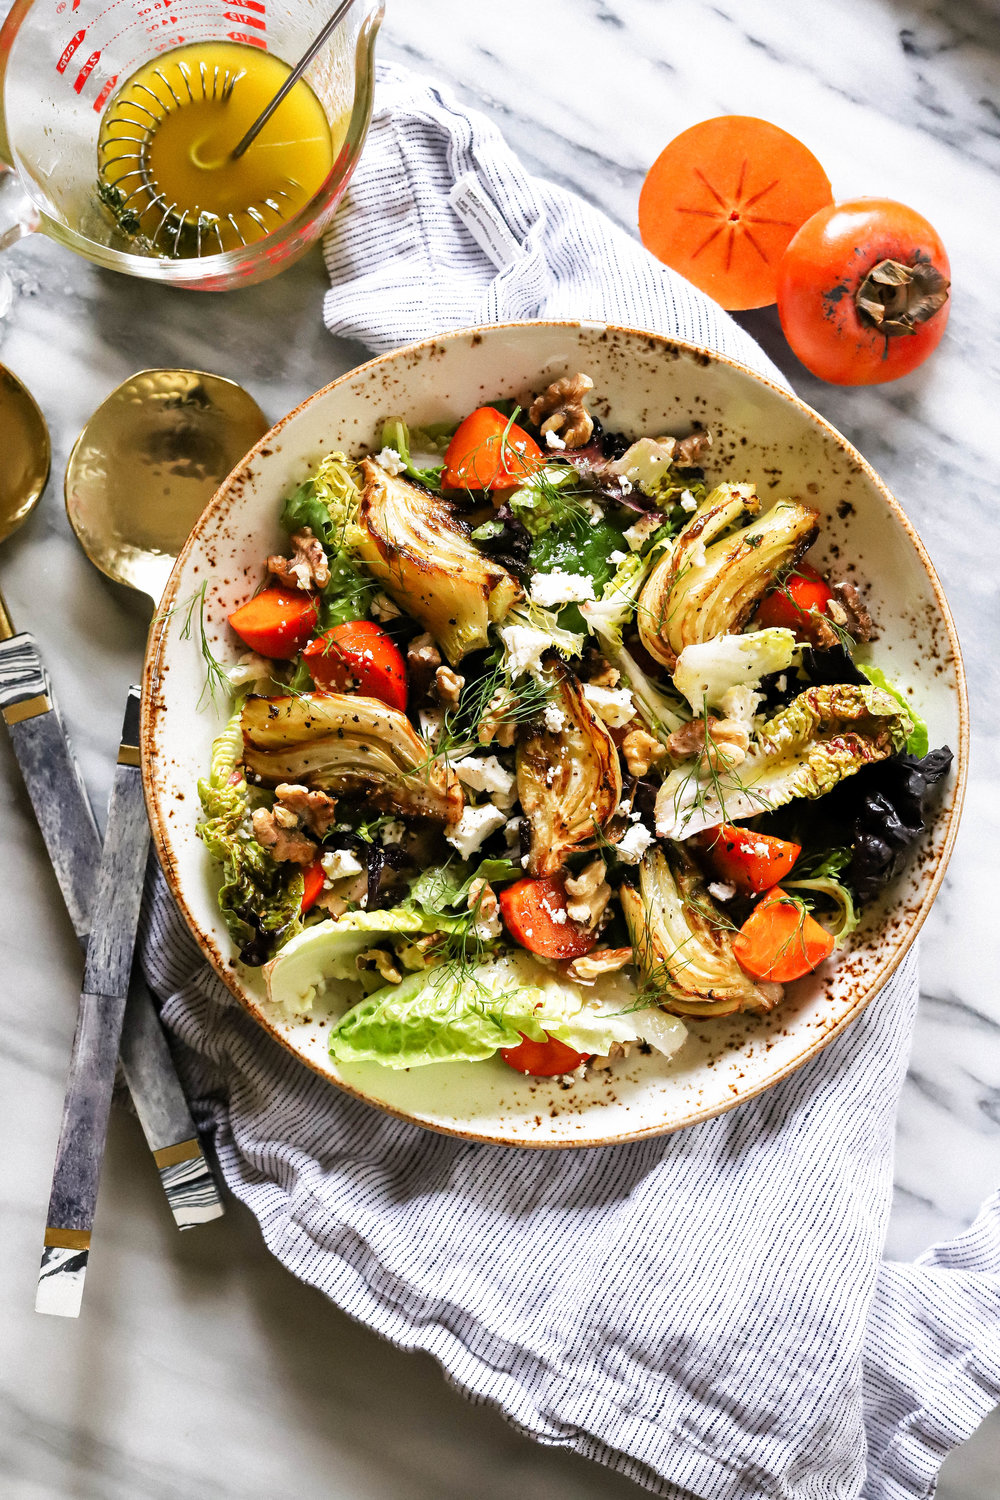 roasted fennel and persimmon salad with walnuts and lemon thyme dressing